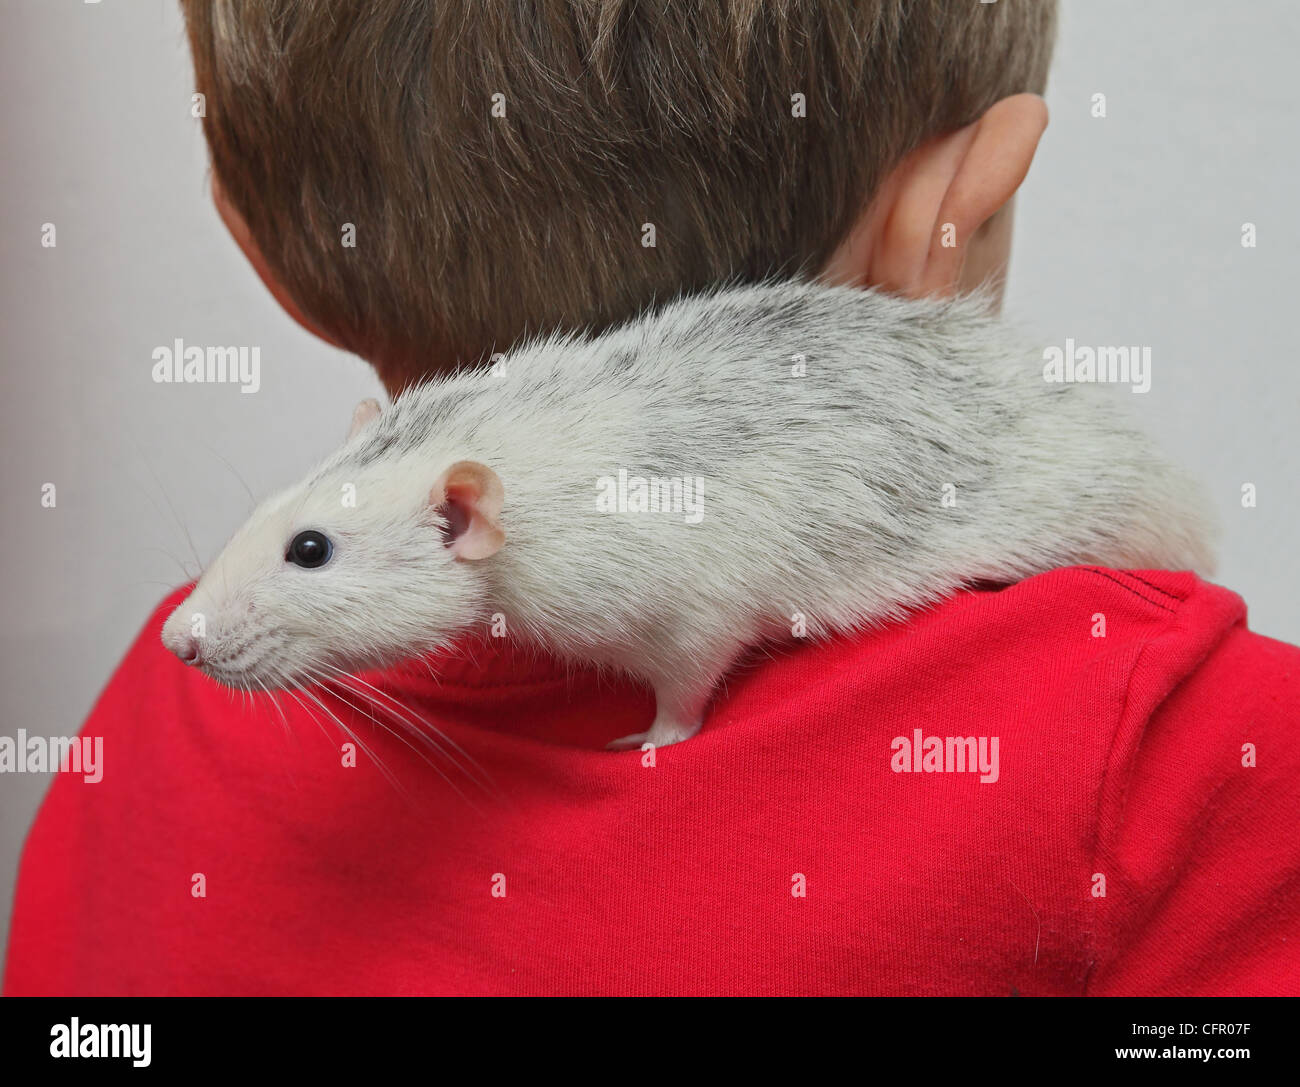 a boy with a home rat at the shoulder - Stock Image